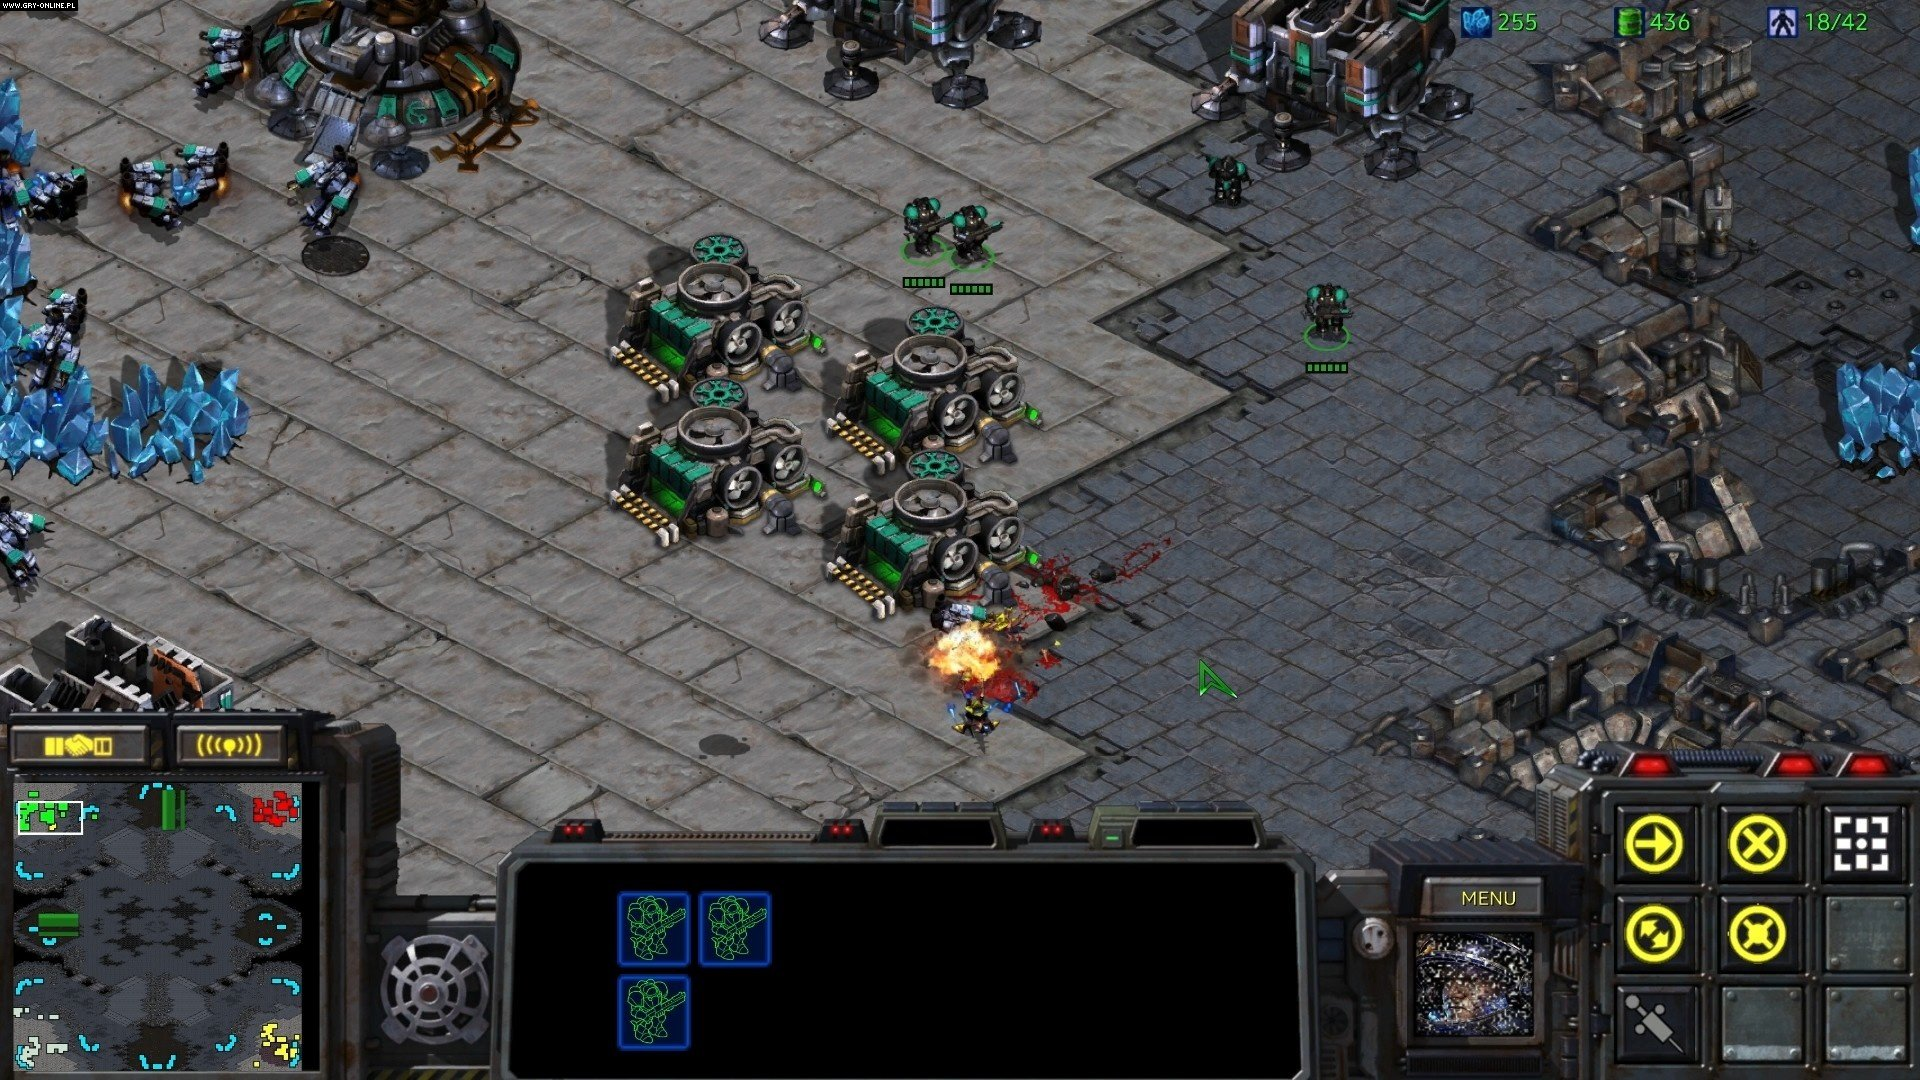 StarCraft: Remastered PC Games Image 4/15, Blizzard Entertainment